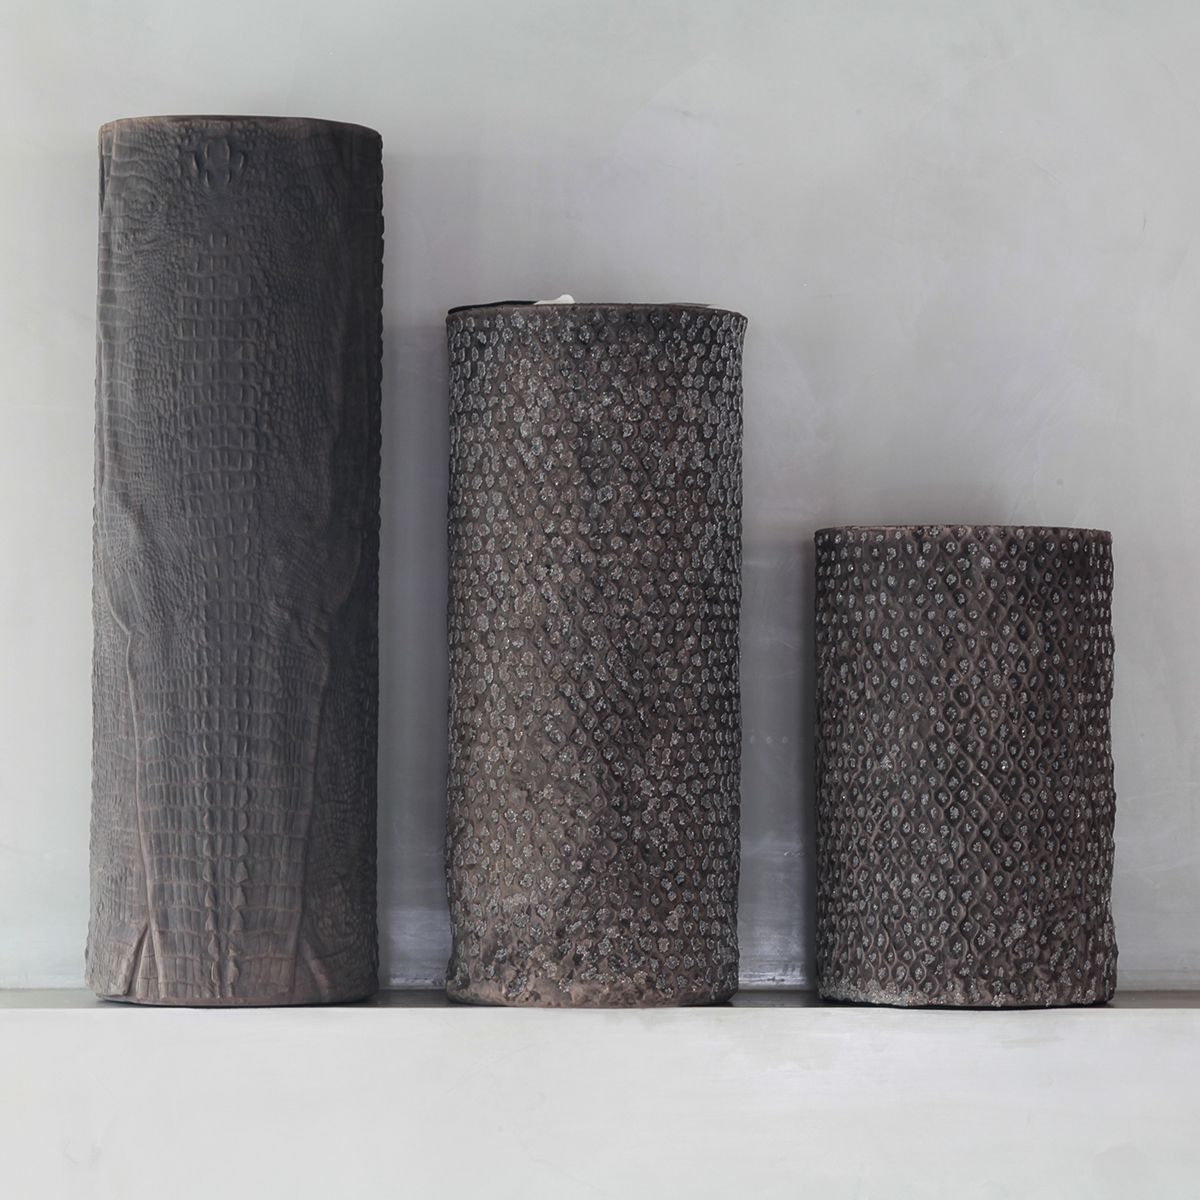 Better in threes... Handcrafted vases by Gilles Caffier, inspired by nature. http://monc13.com/